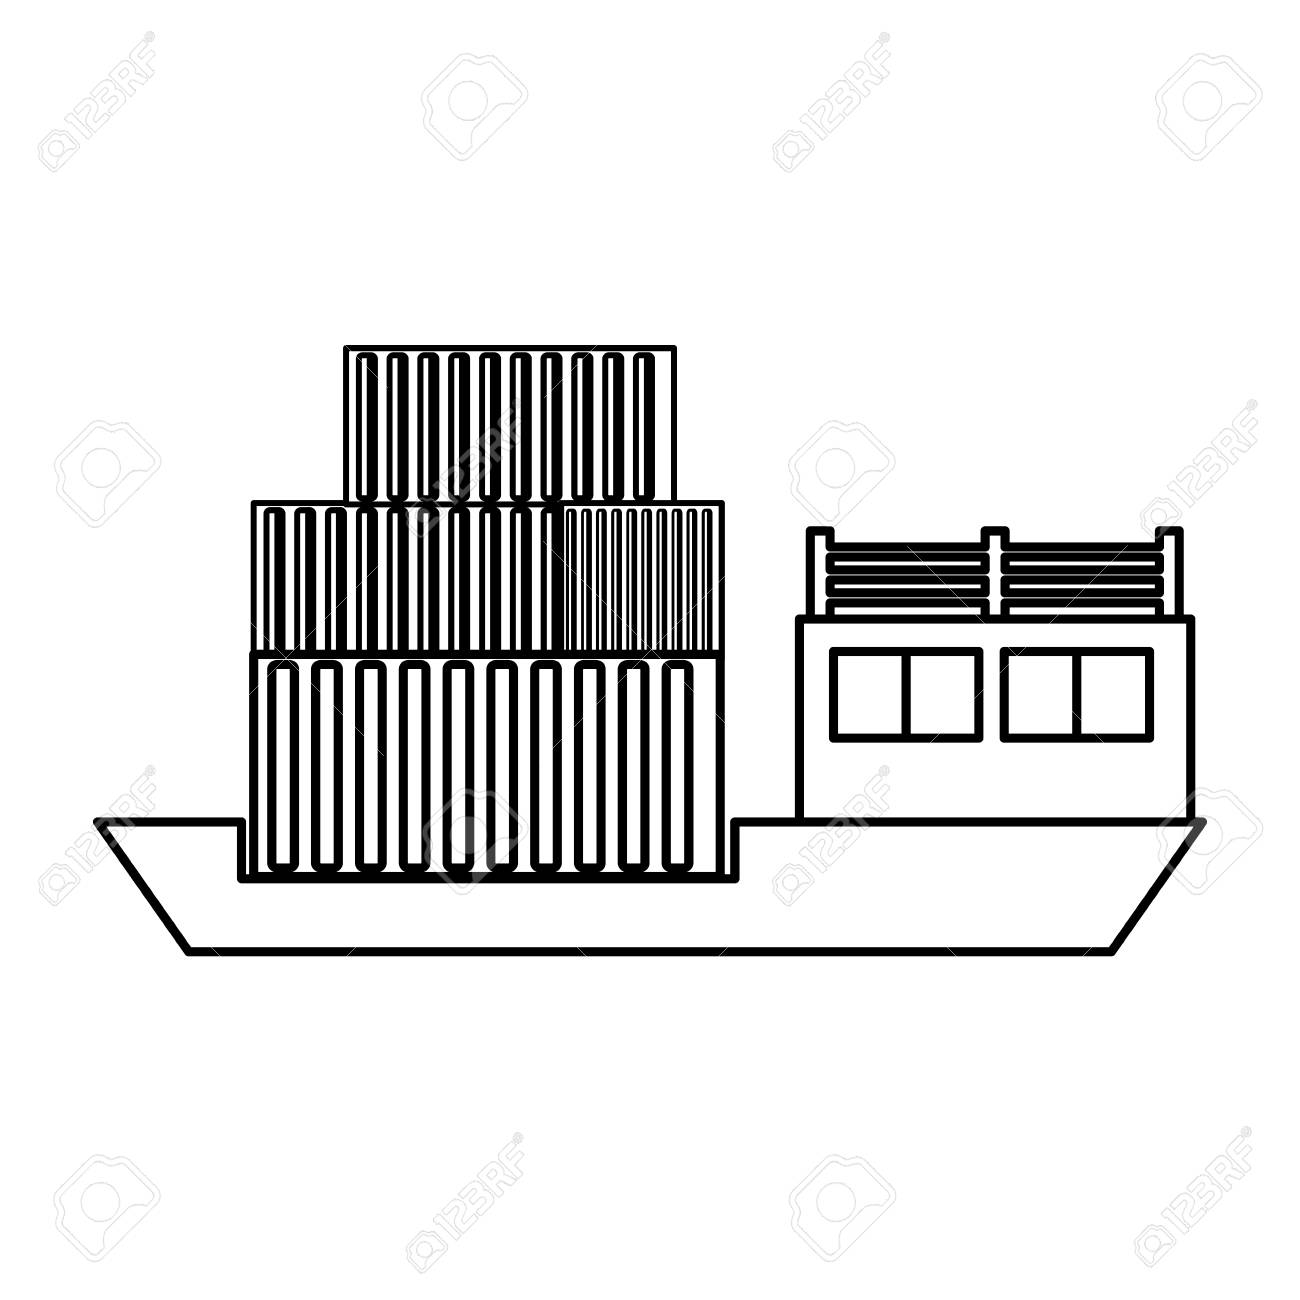 hight resolution of freighter cargo ship icon vector illustration graphic design stock vector 84823478